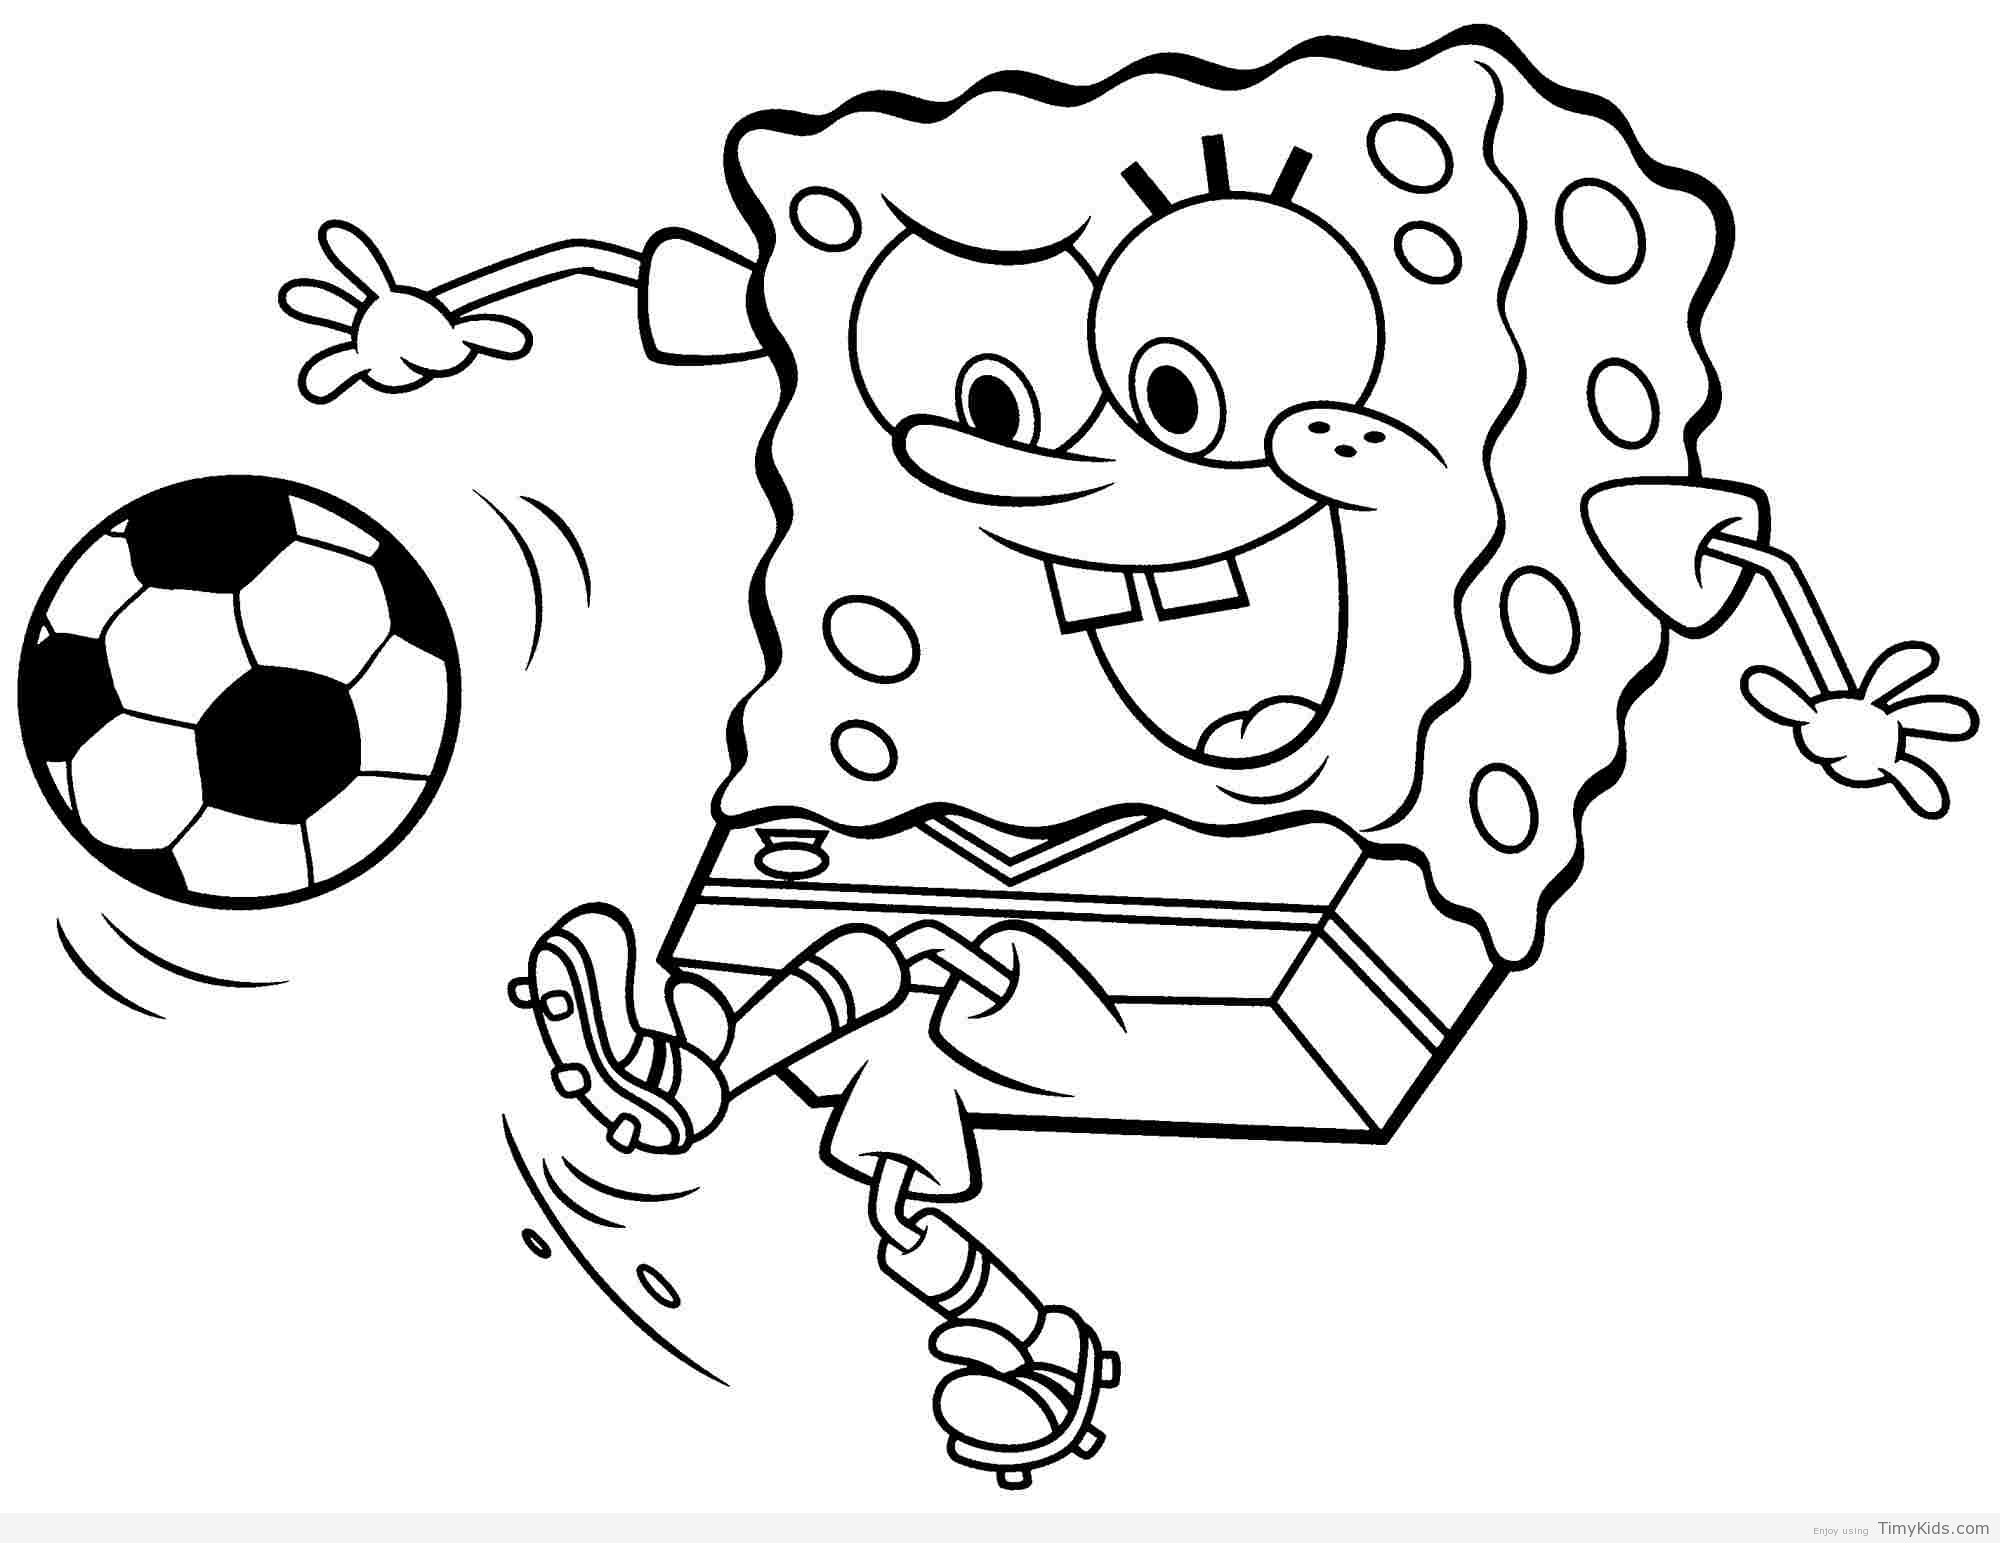 Arsenal Coloring Pages at GetDrawings com | Free for